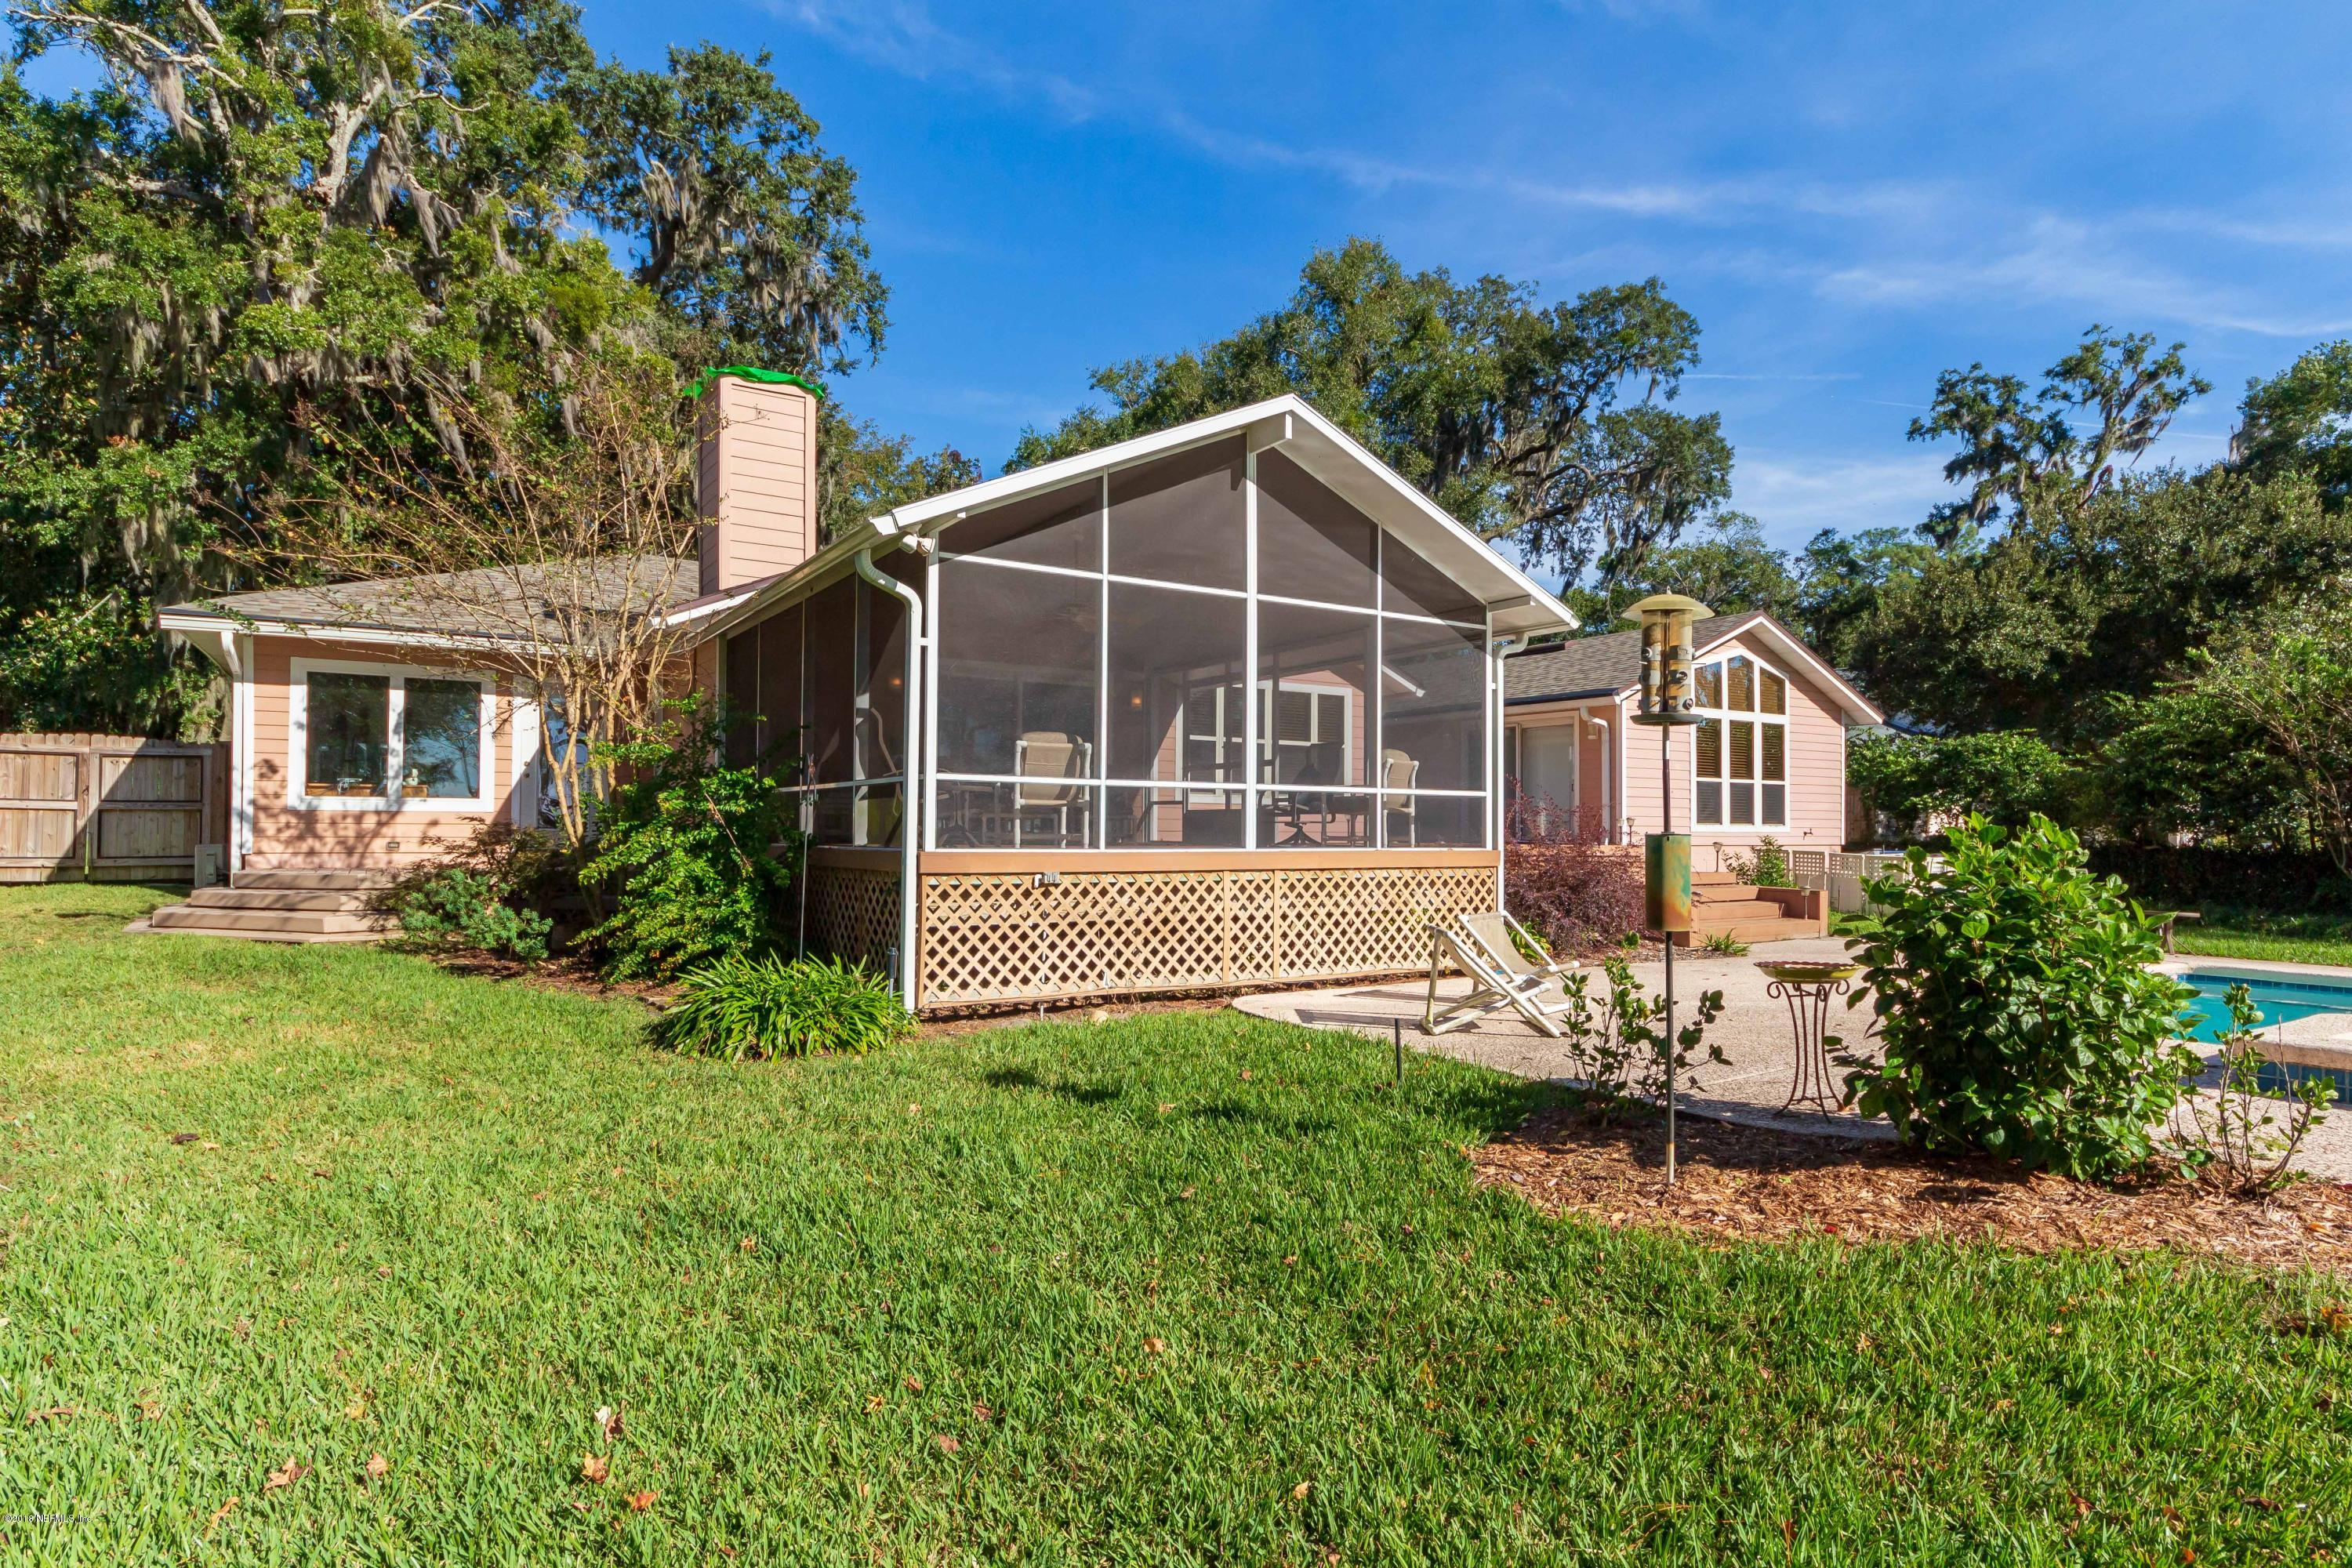 2610 HOLLY POINT, ORANGE PARK, FLORIDA 32073, 4 Bedrooms Bedrooms, ,3 BathroomsBathrooms,Residential - single family,For sale,HOLLY POINT,969229